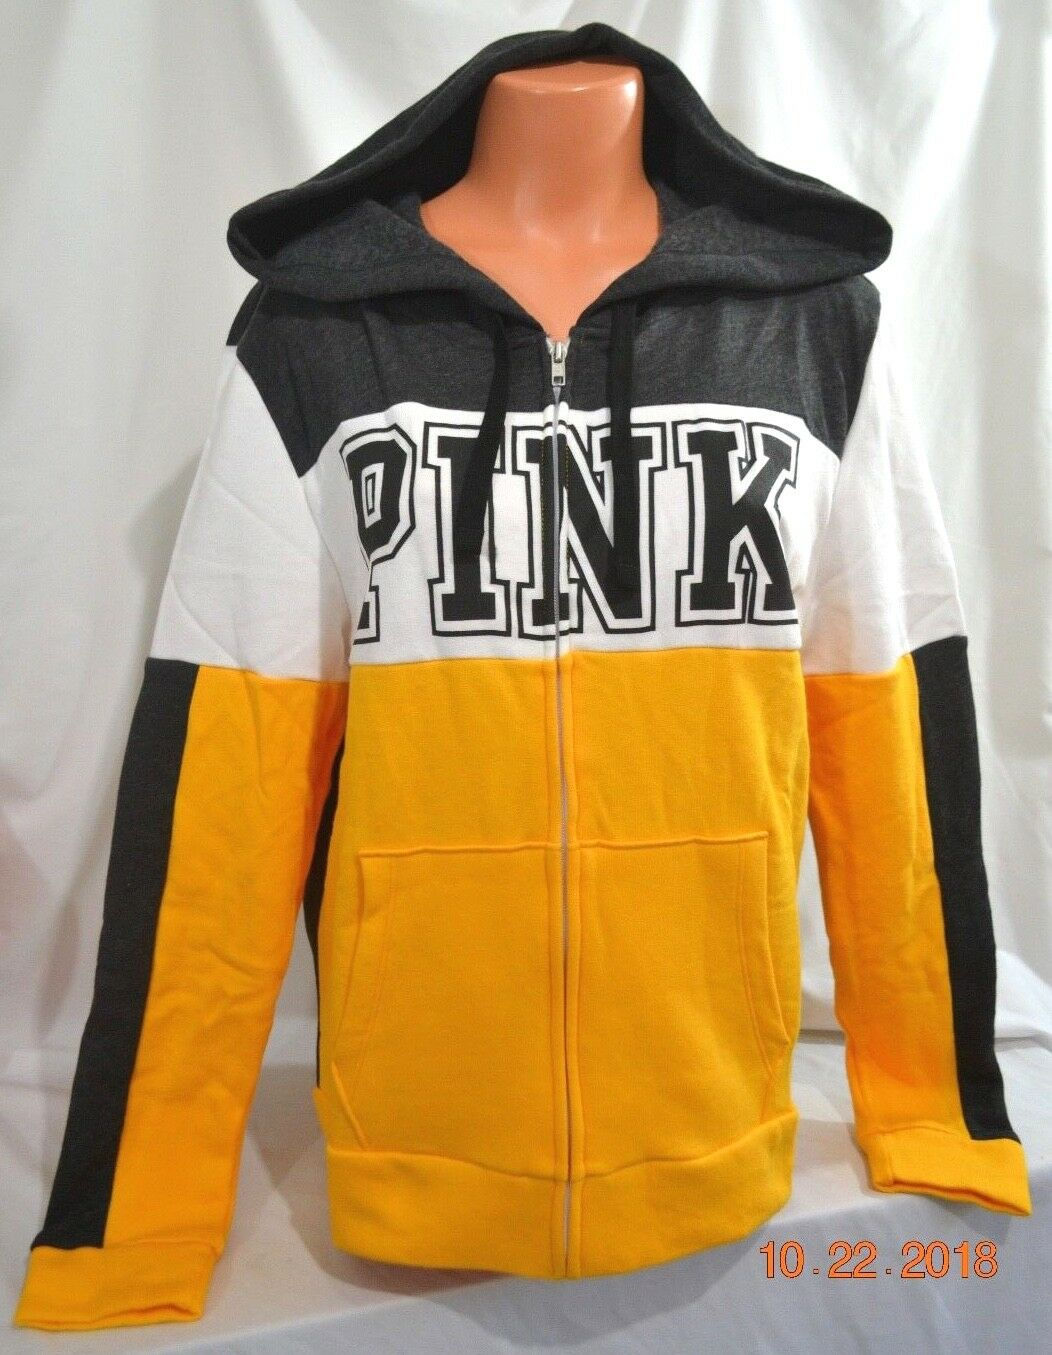 4151c949e7d8 Victorias Secret GRAPHIC Perfect Full Zip Hoodie gold GLOW NWT SOLD OUT L  Pink nptzjm3088-Hoodies & Sweatshirts